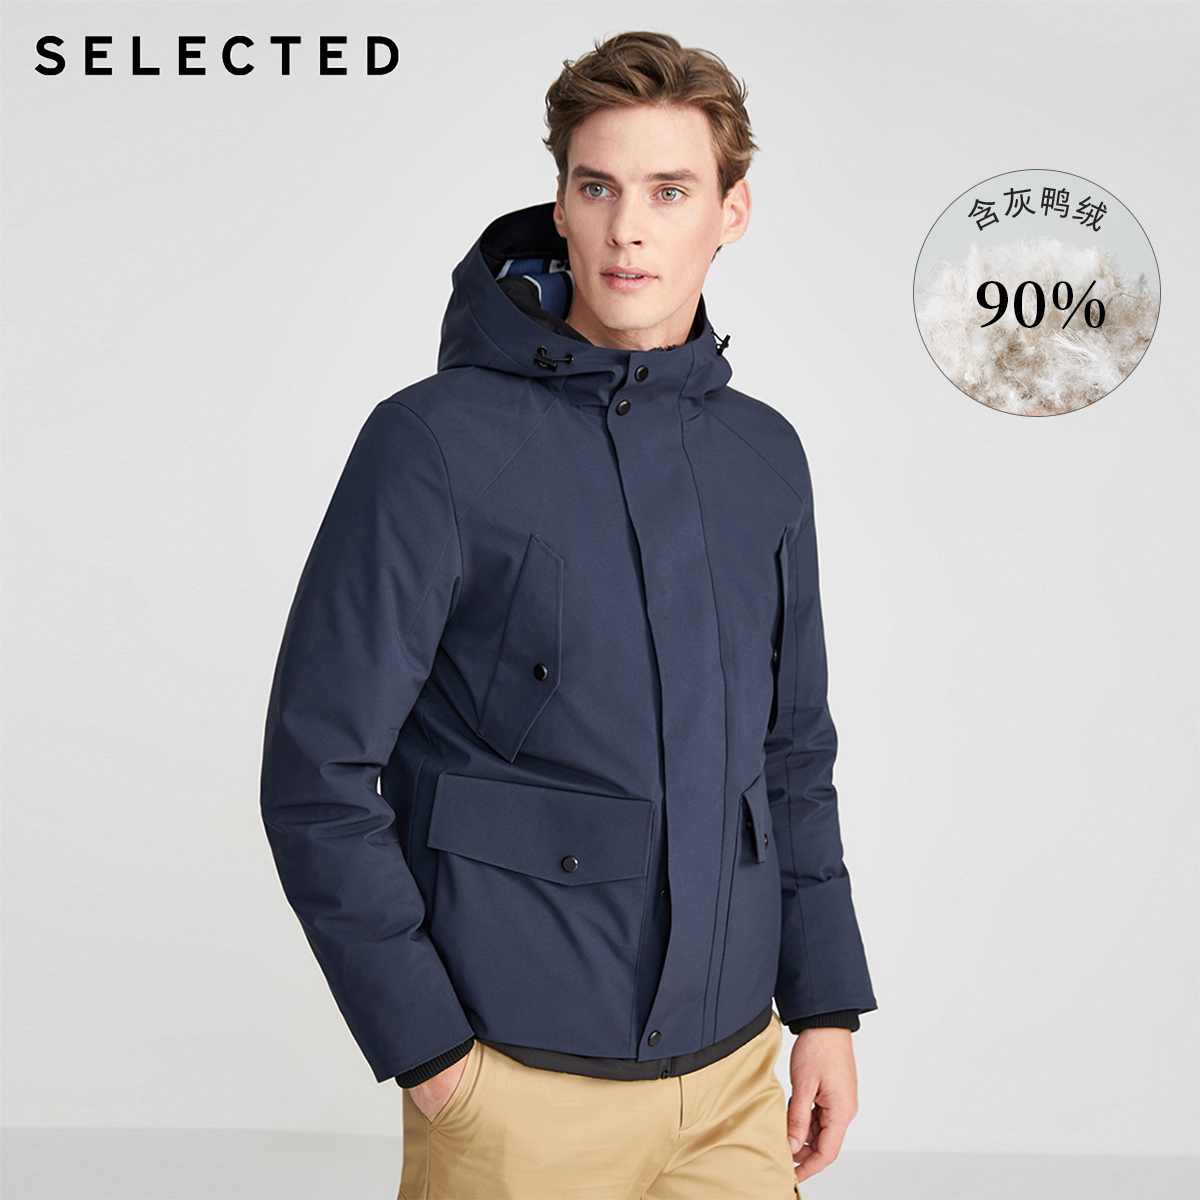 Selected Slade new hooded Multi Pocket casual men's down jacket s420112501